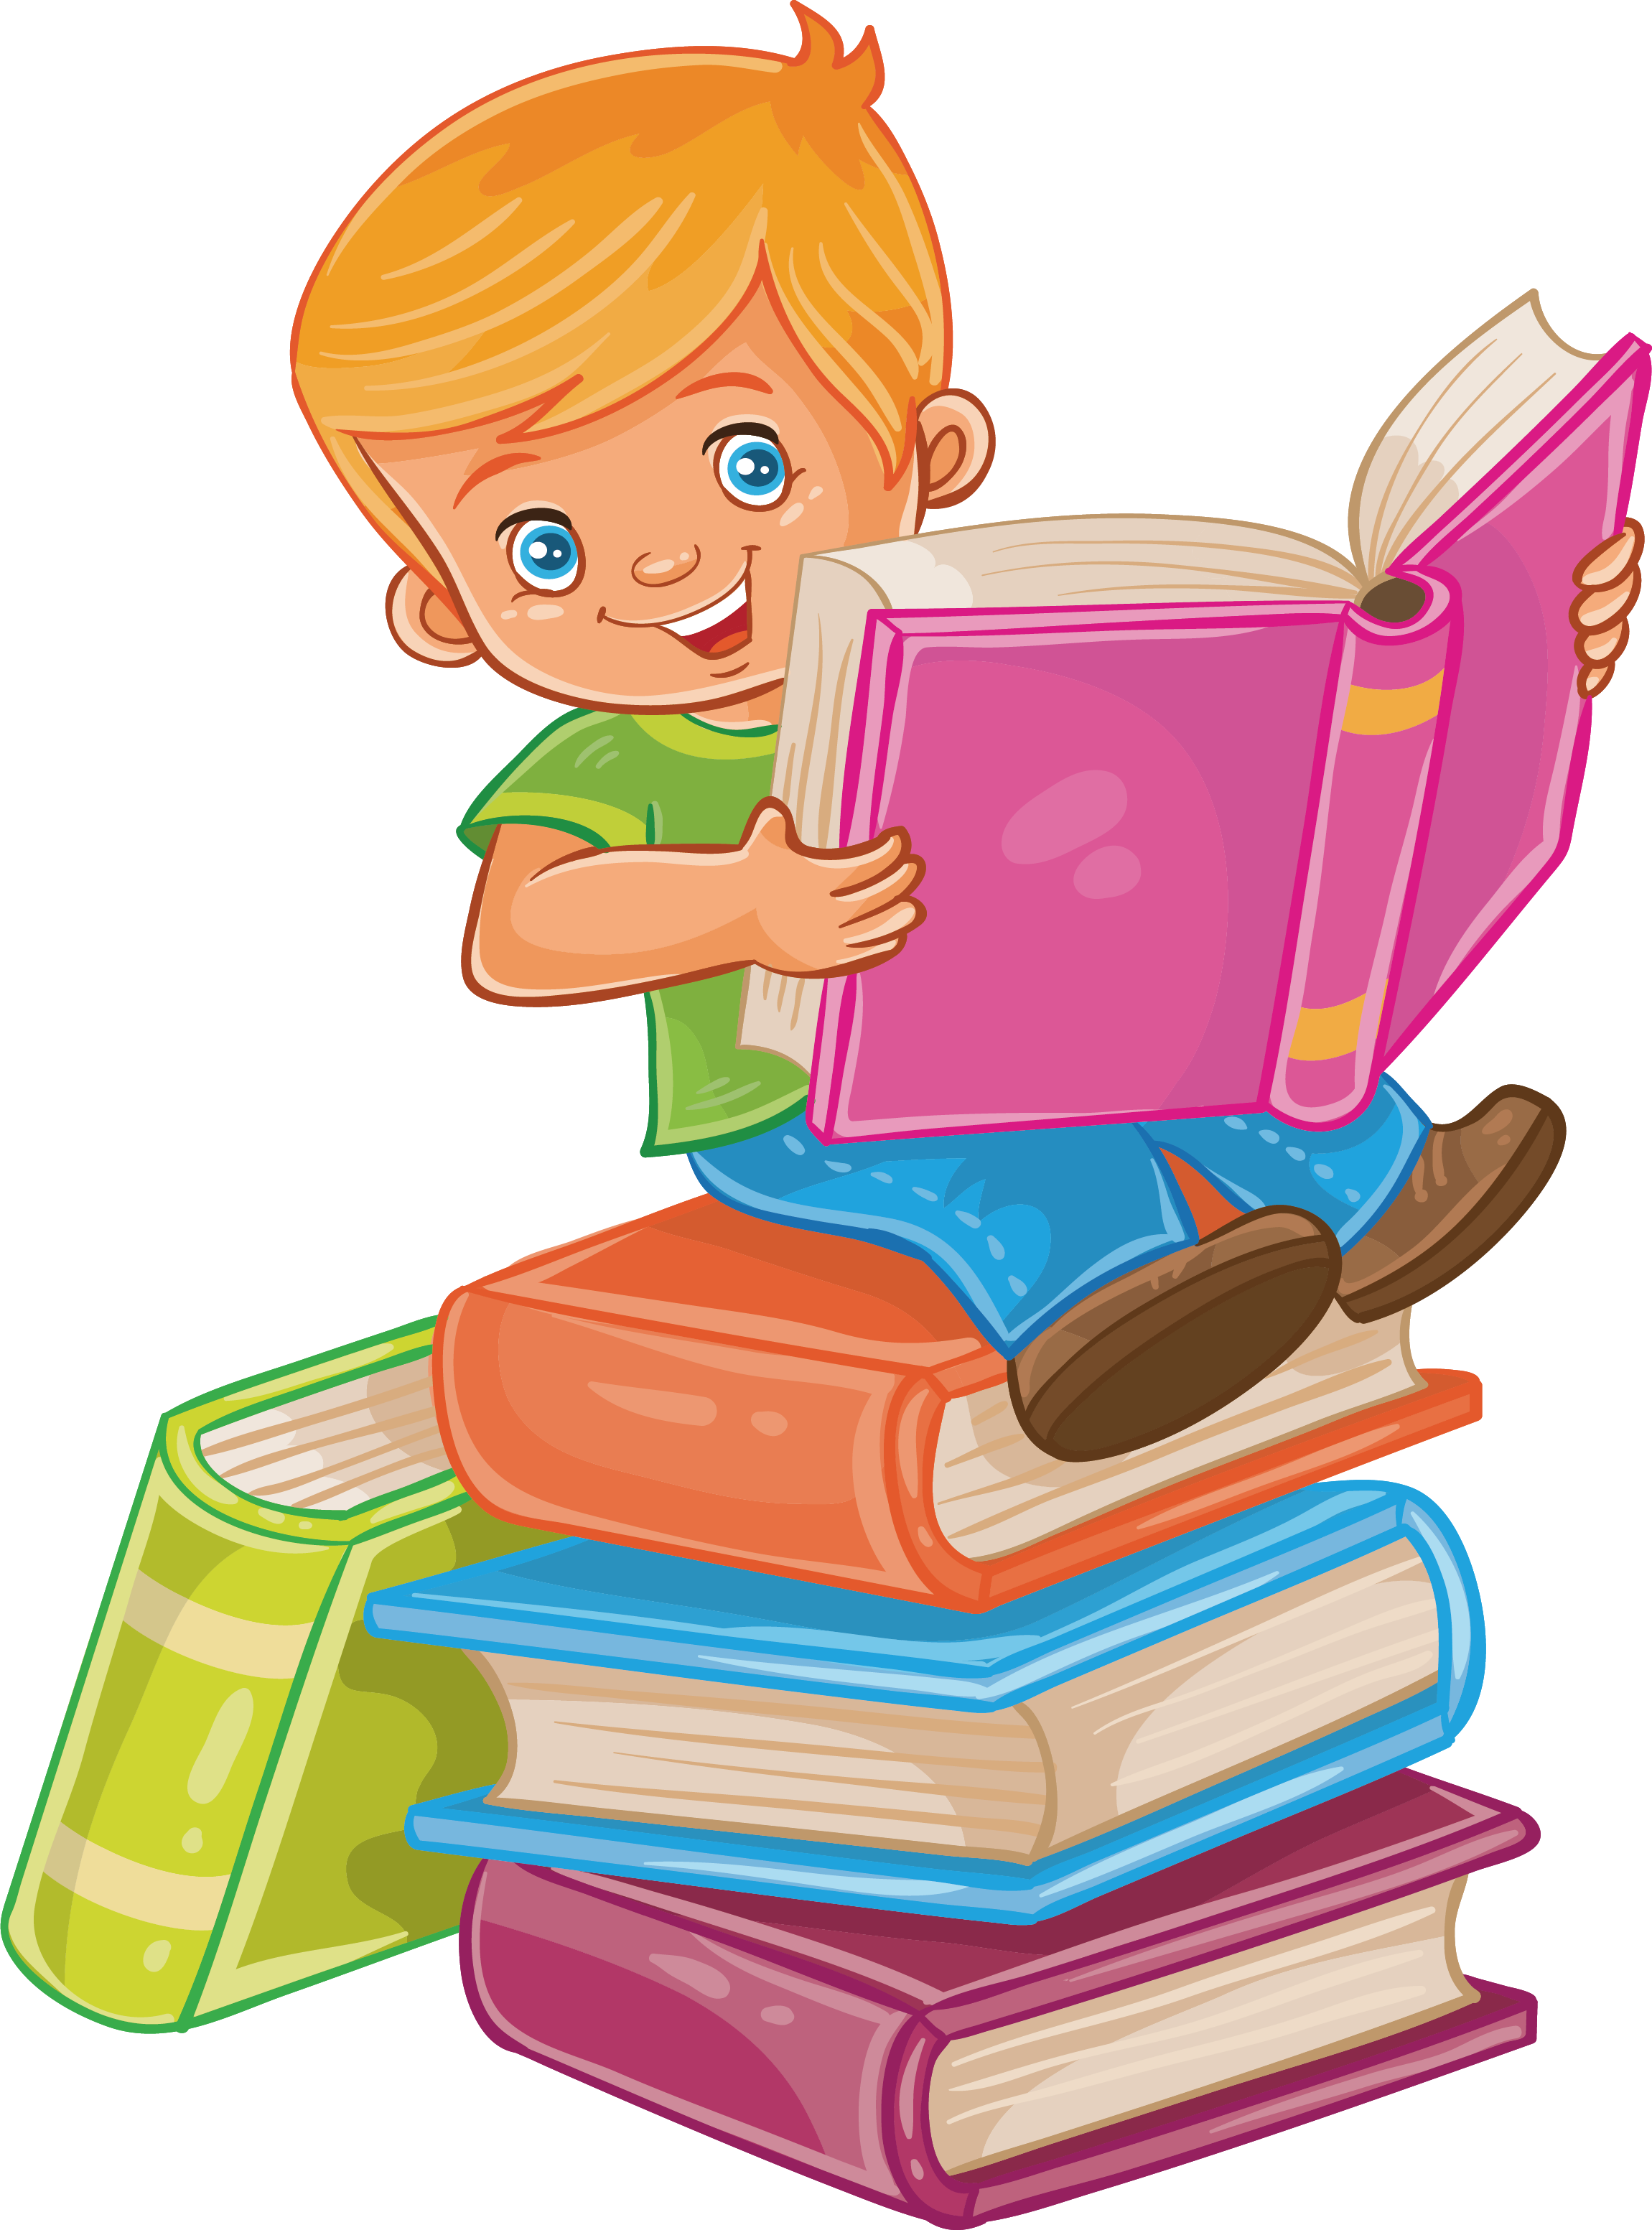 kisspng-child-reading-royalty-free-illustration-sit-in-a-book-read-a-book-5a89e60c75d122.0406565115189867644826